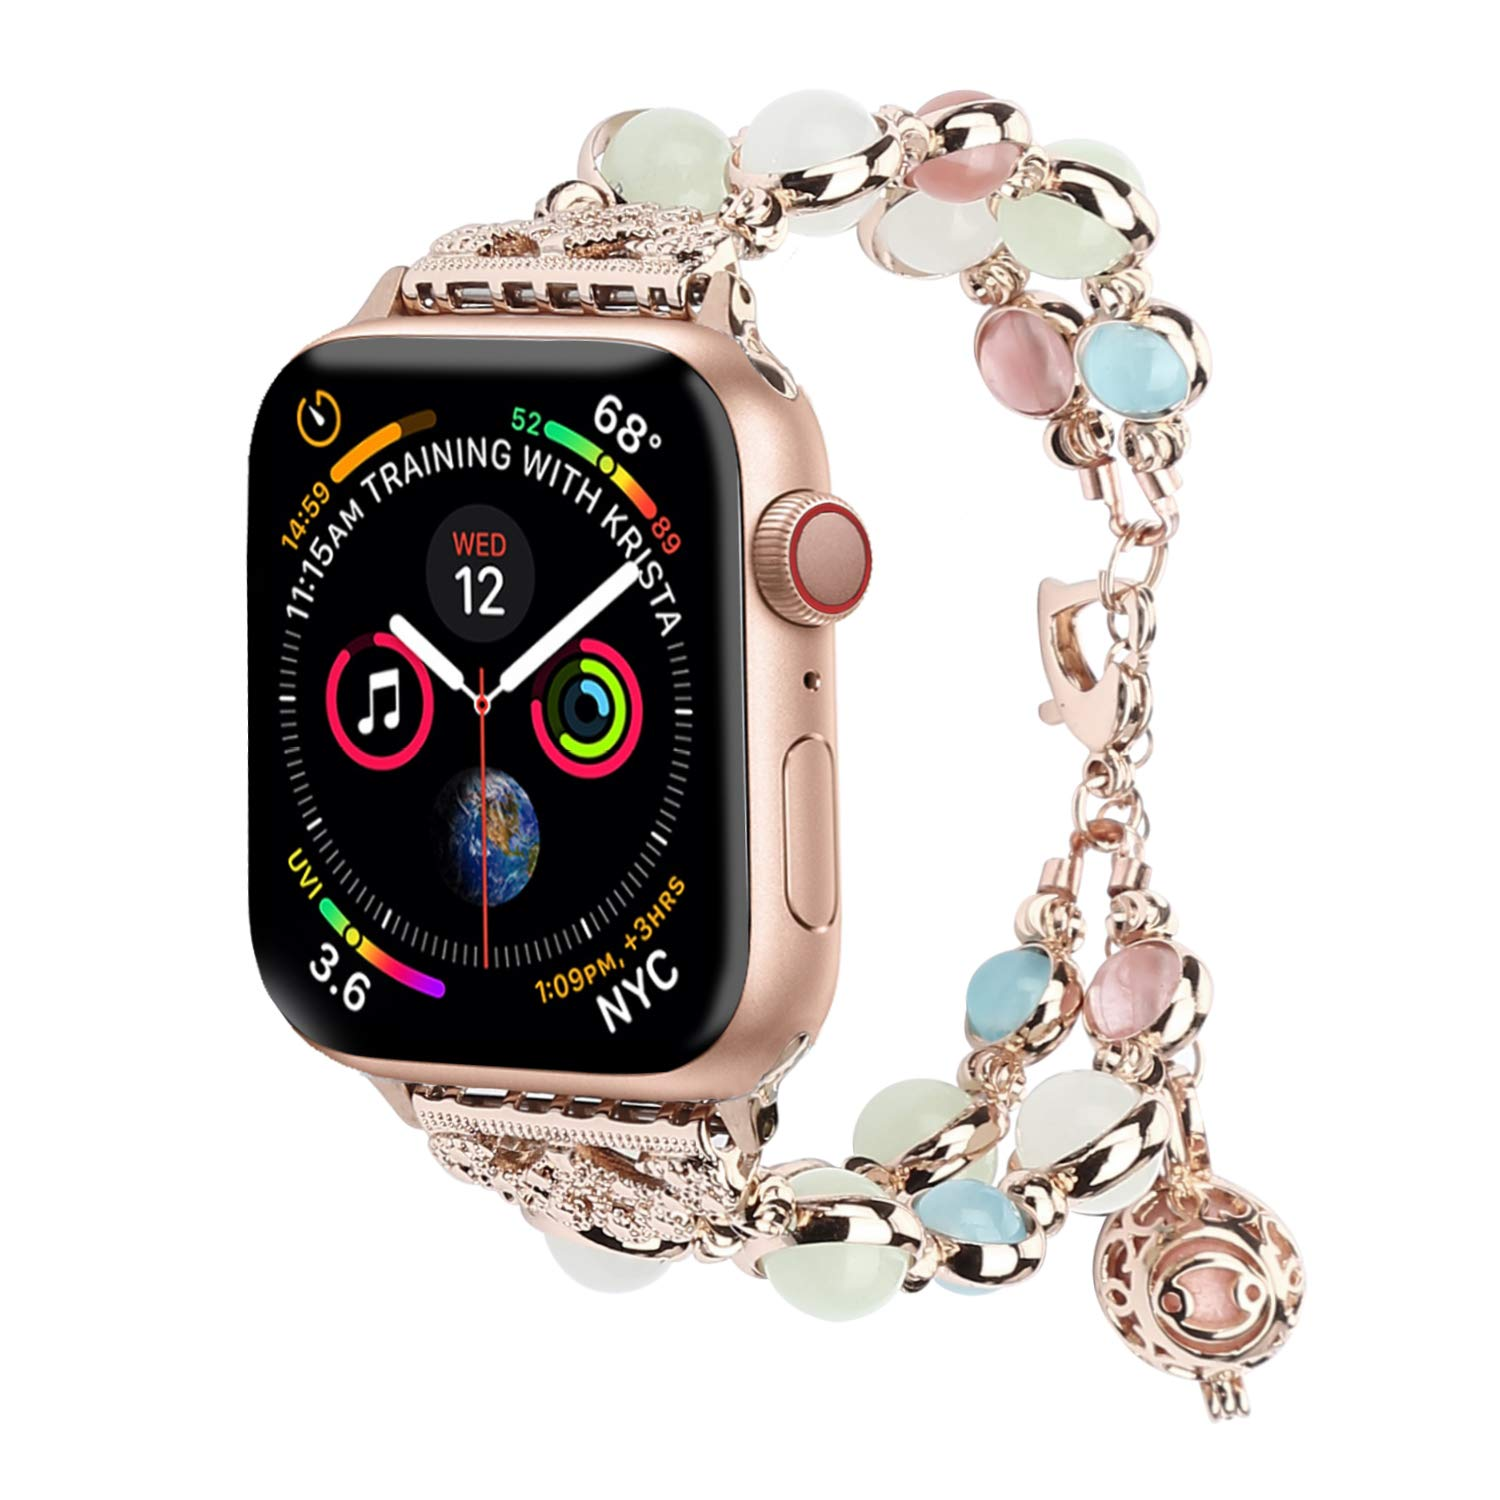 TILON for Apple Watch Band 38mm 40mm Series 4/3/2/1, Adjustable Wristband Handmade Night Luminous Pearl iWatch Bracelet with Essential Oil/Perfume Storage Pendant for Women/Girls(Rose Gold)